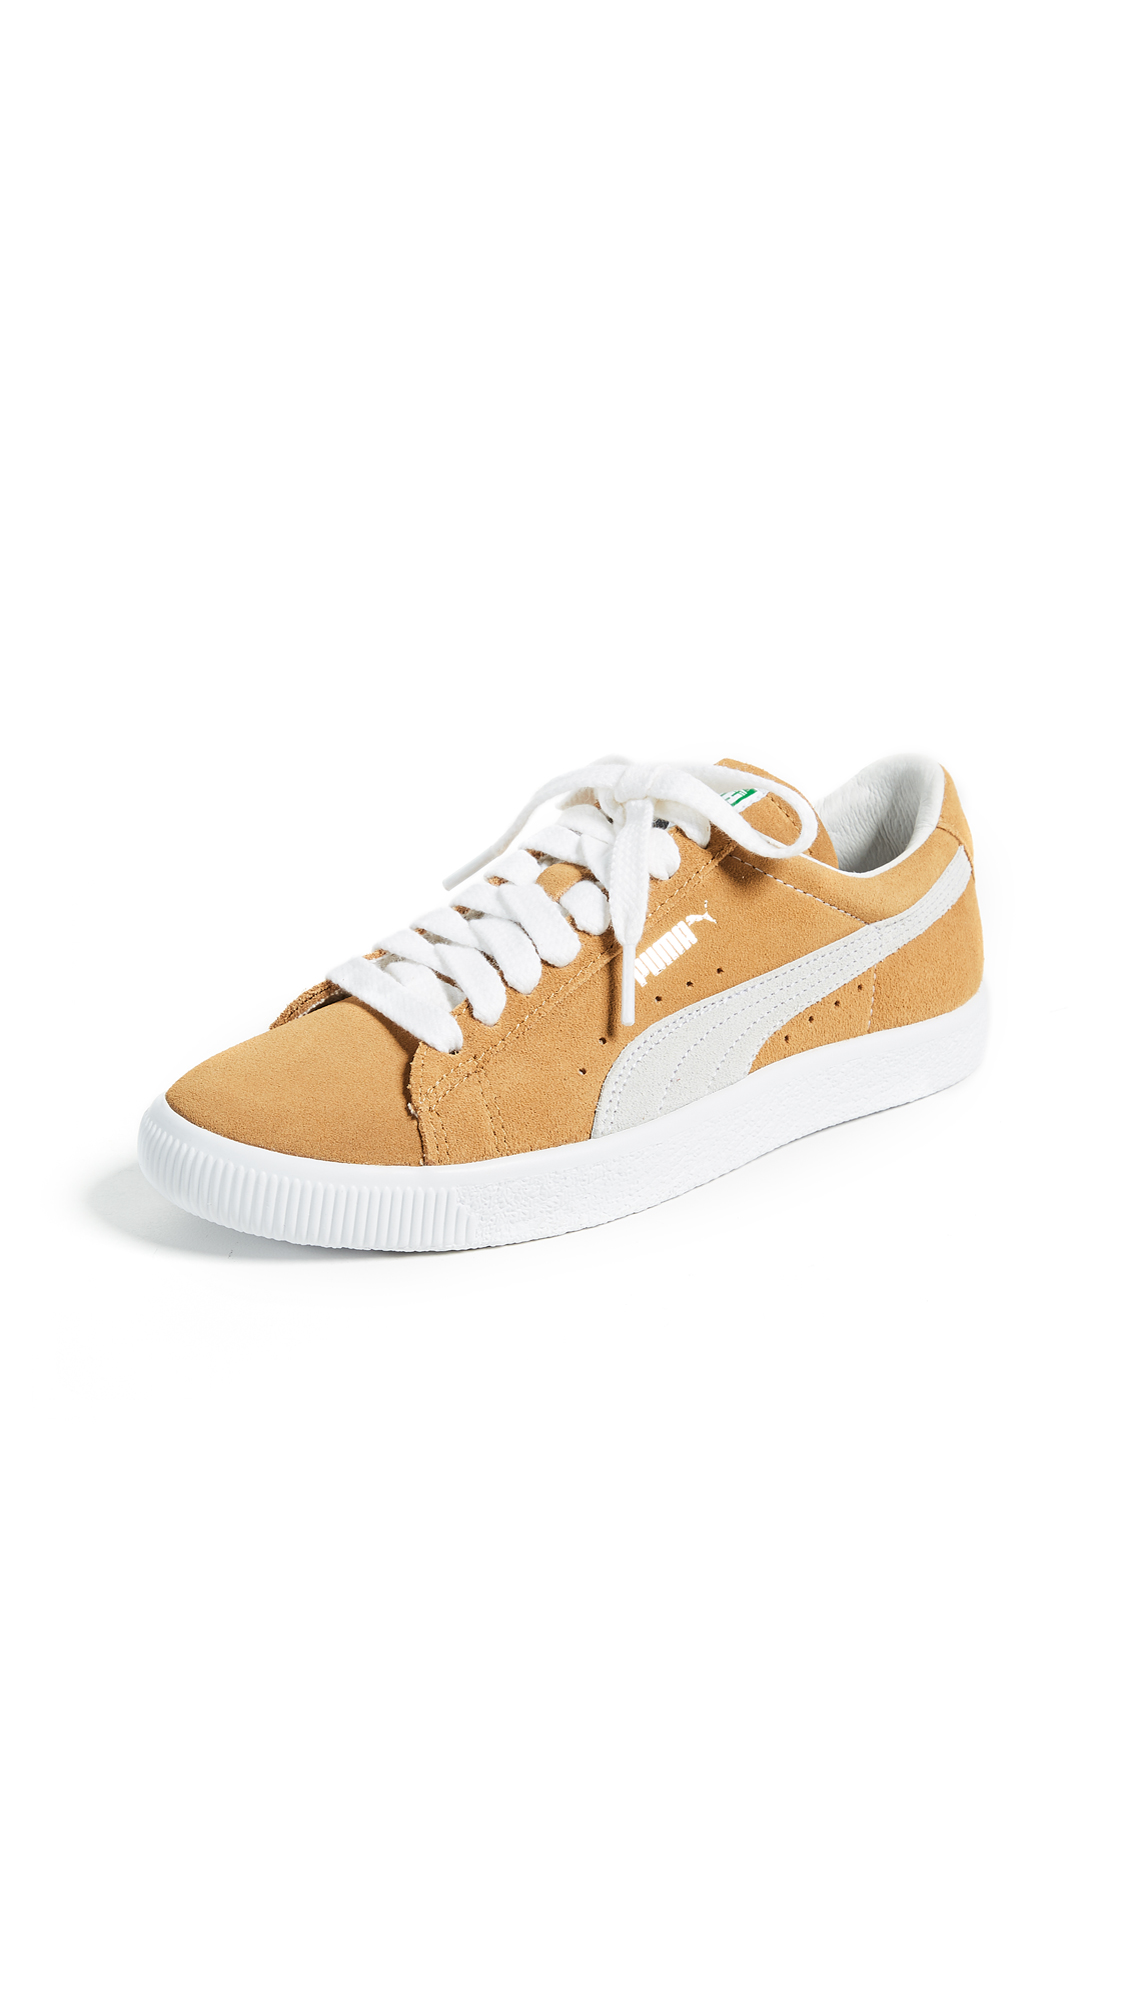 PUMA Suede 90681 Sneakers - Honey Mustard/Puma White